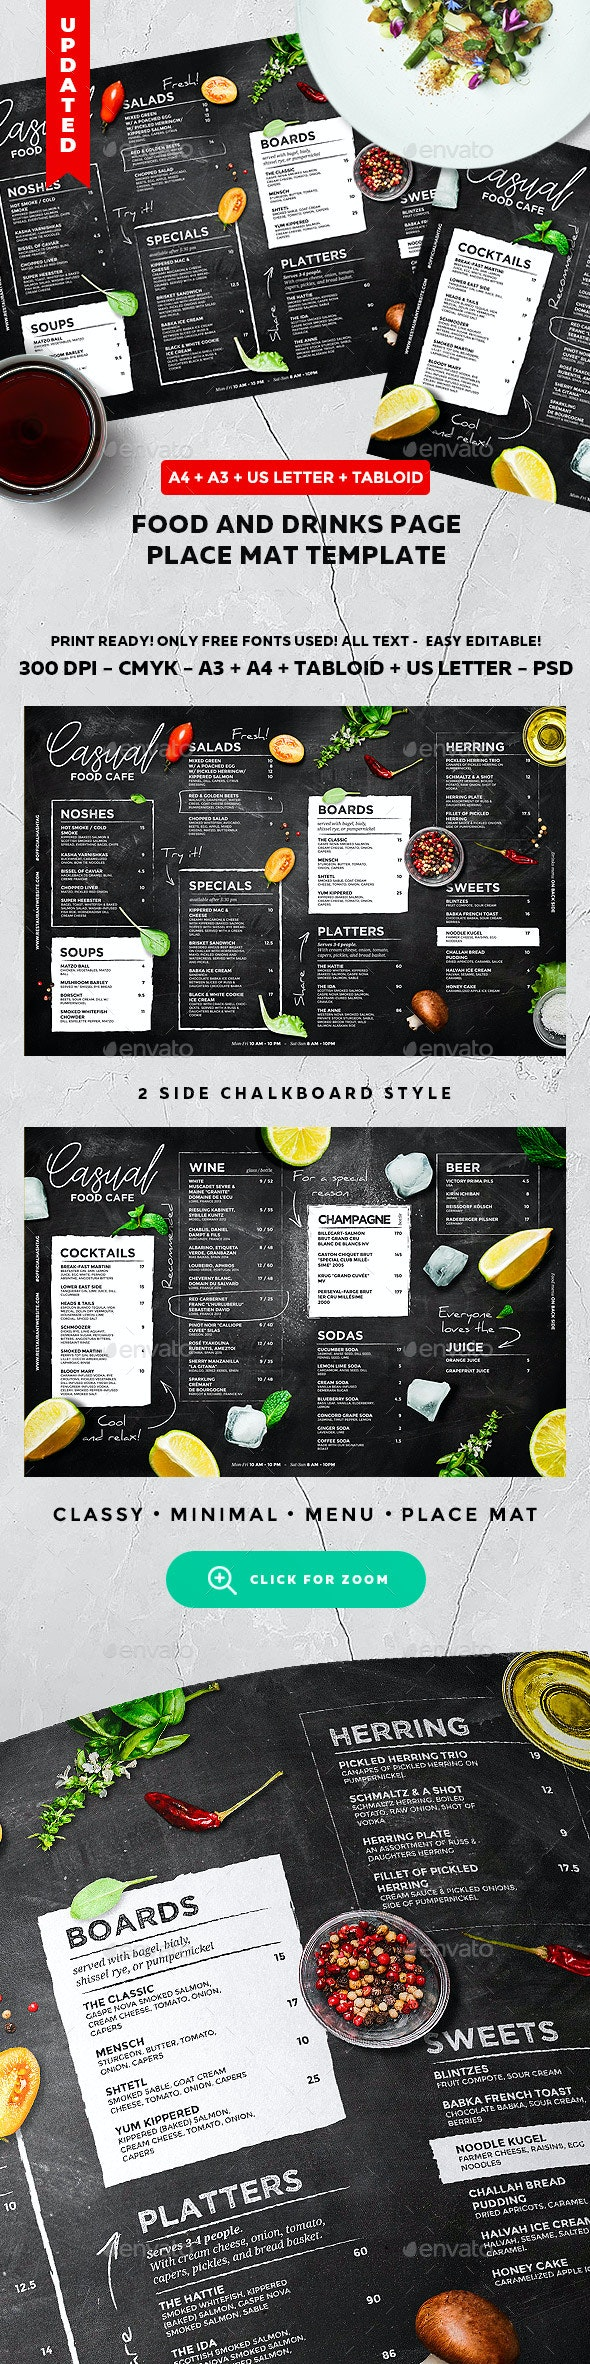 Chalkboard Cafe Menu - Food Menus Print Templates